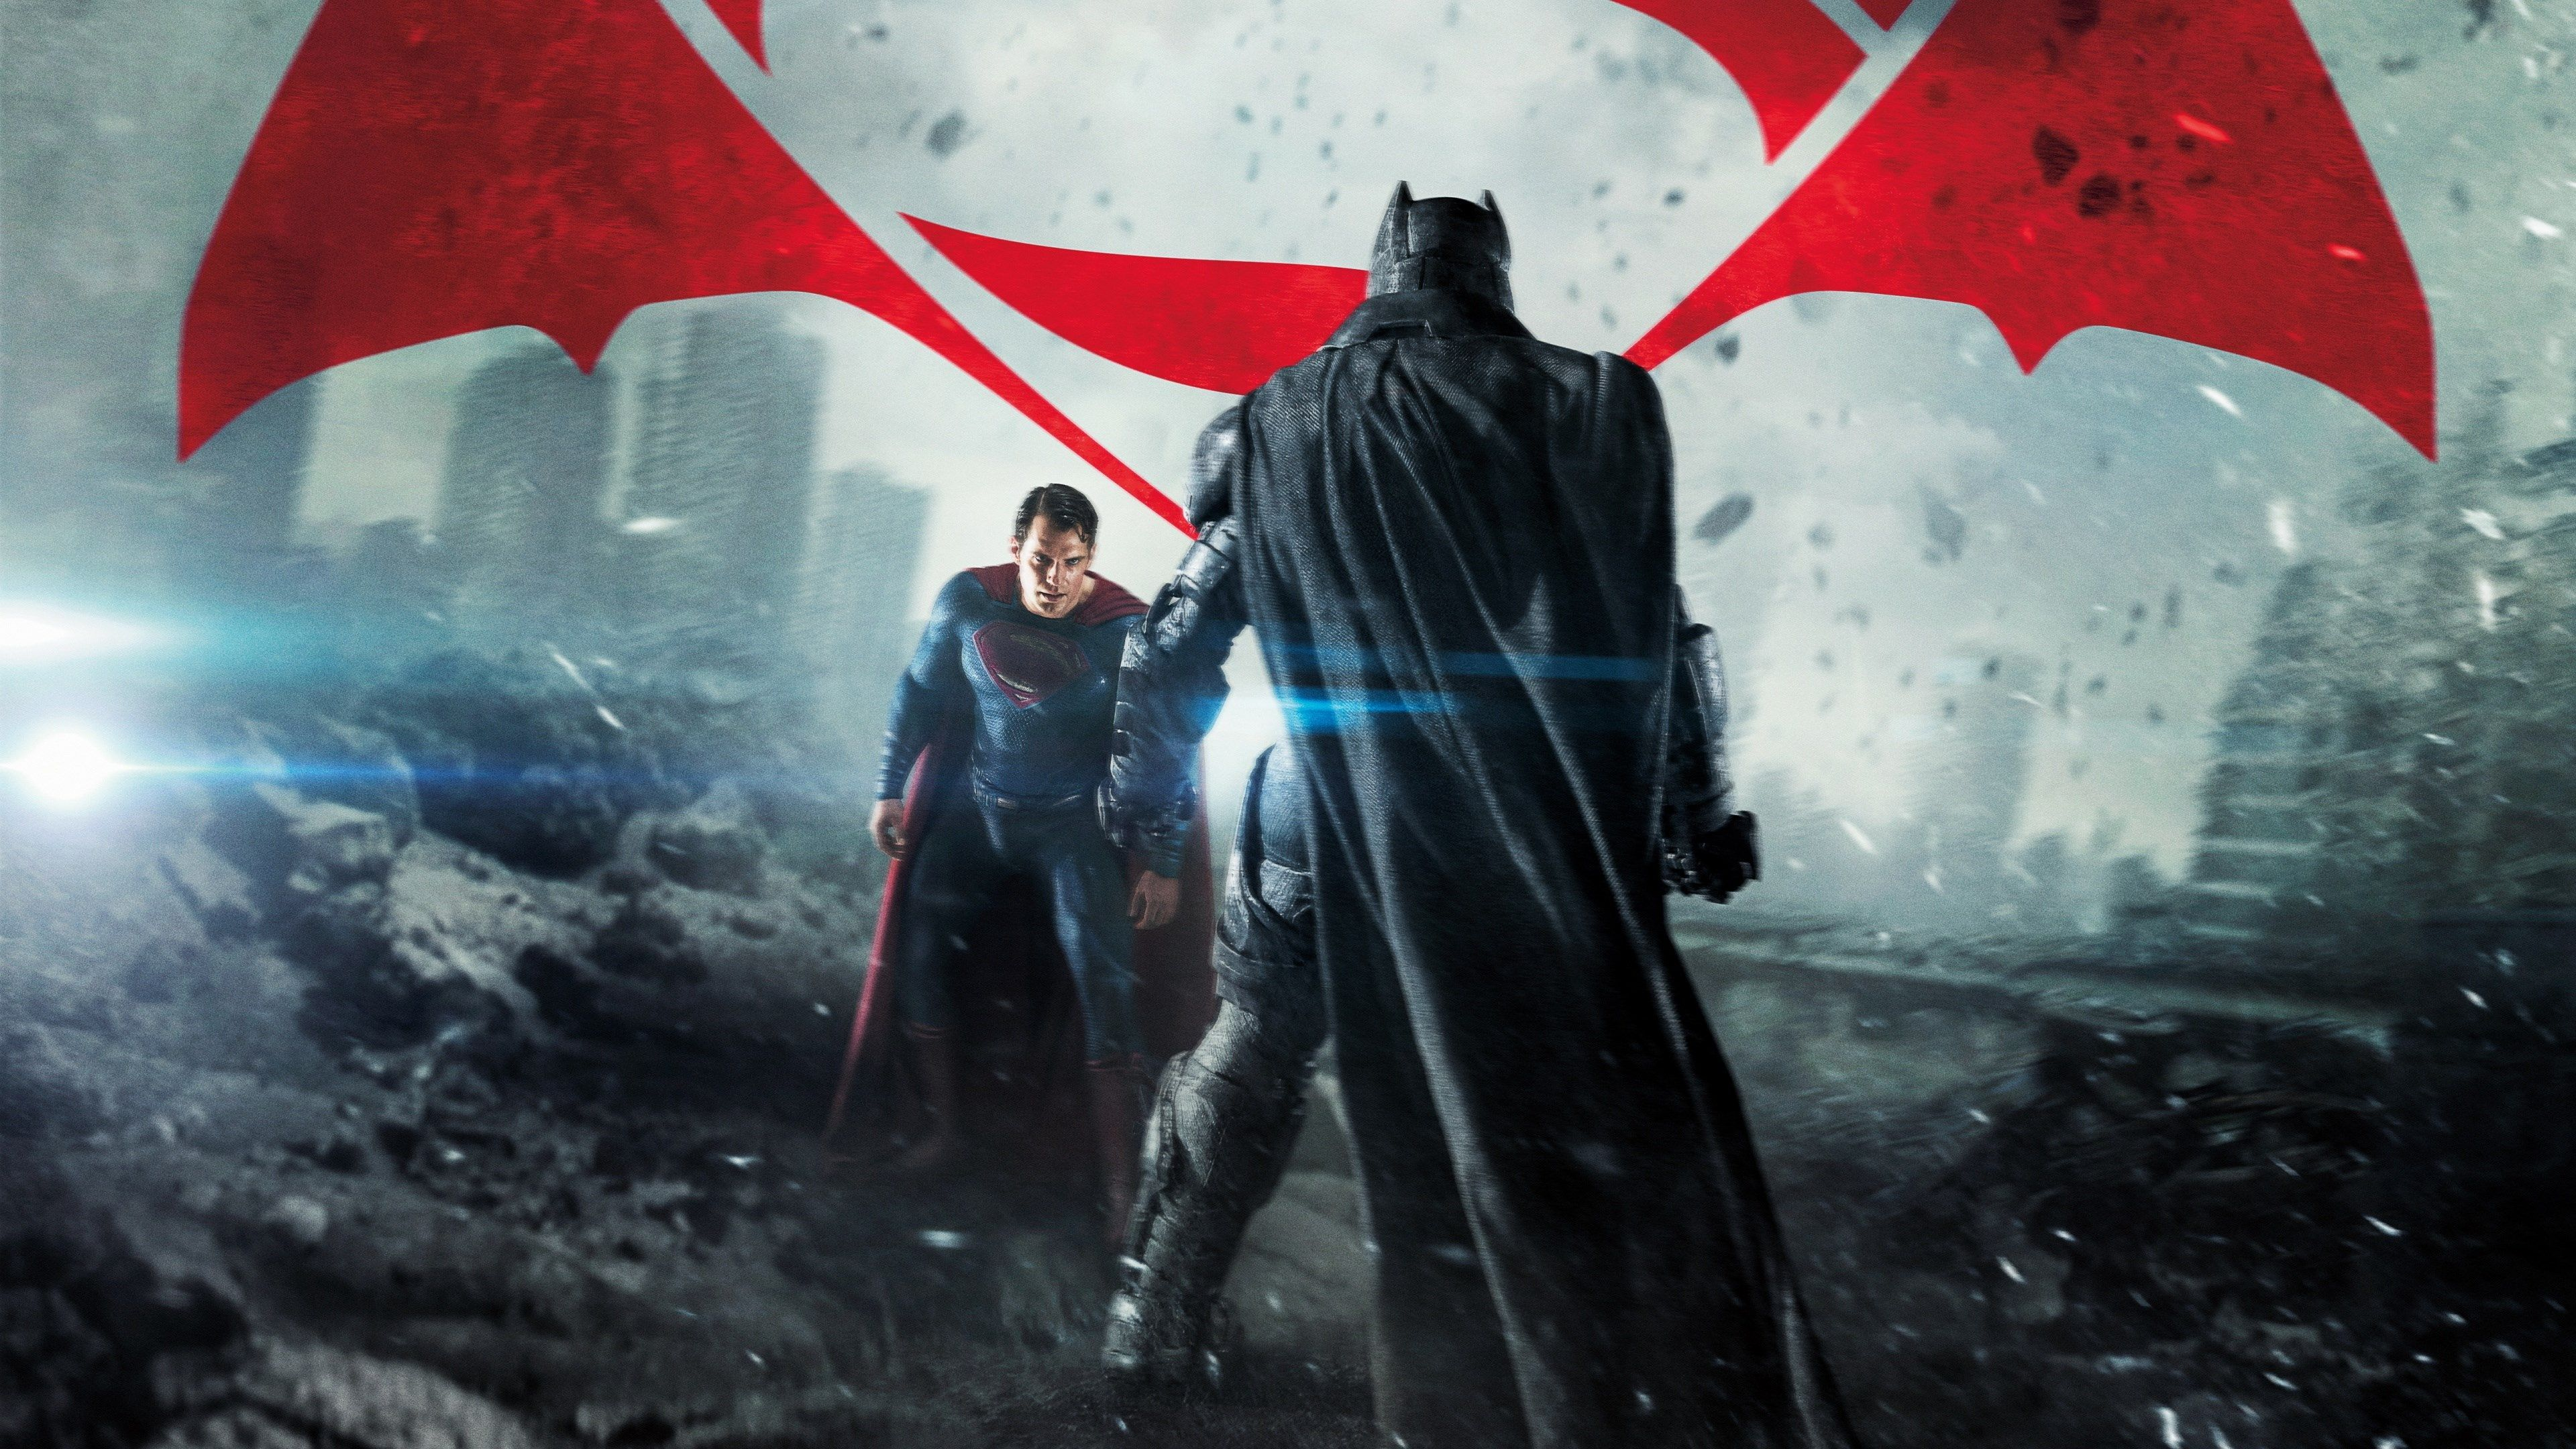 3840x2160 4k wallpaper batman v superman dawn of justice (3840x2160)